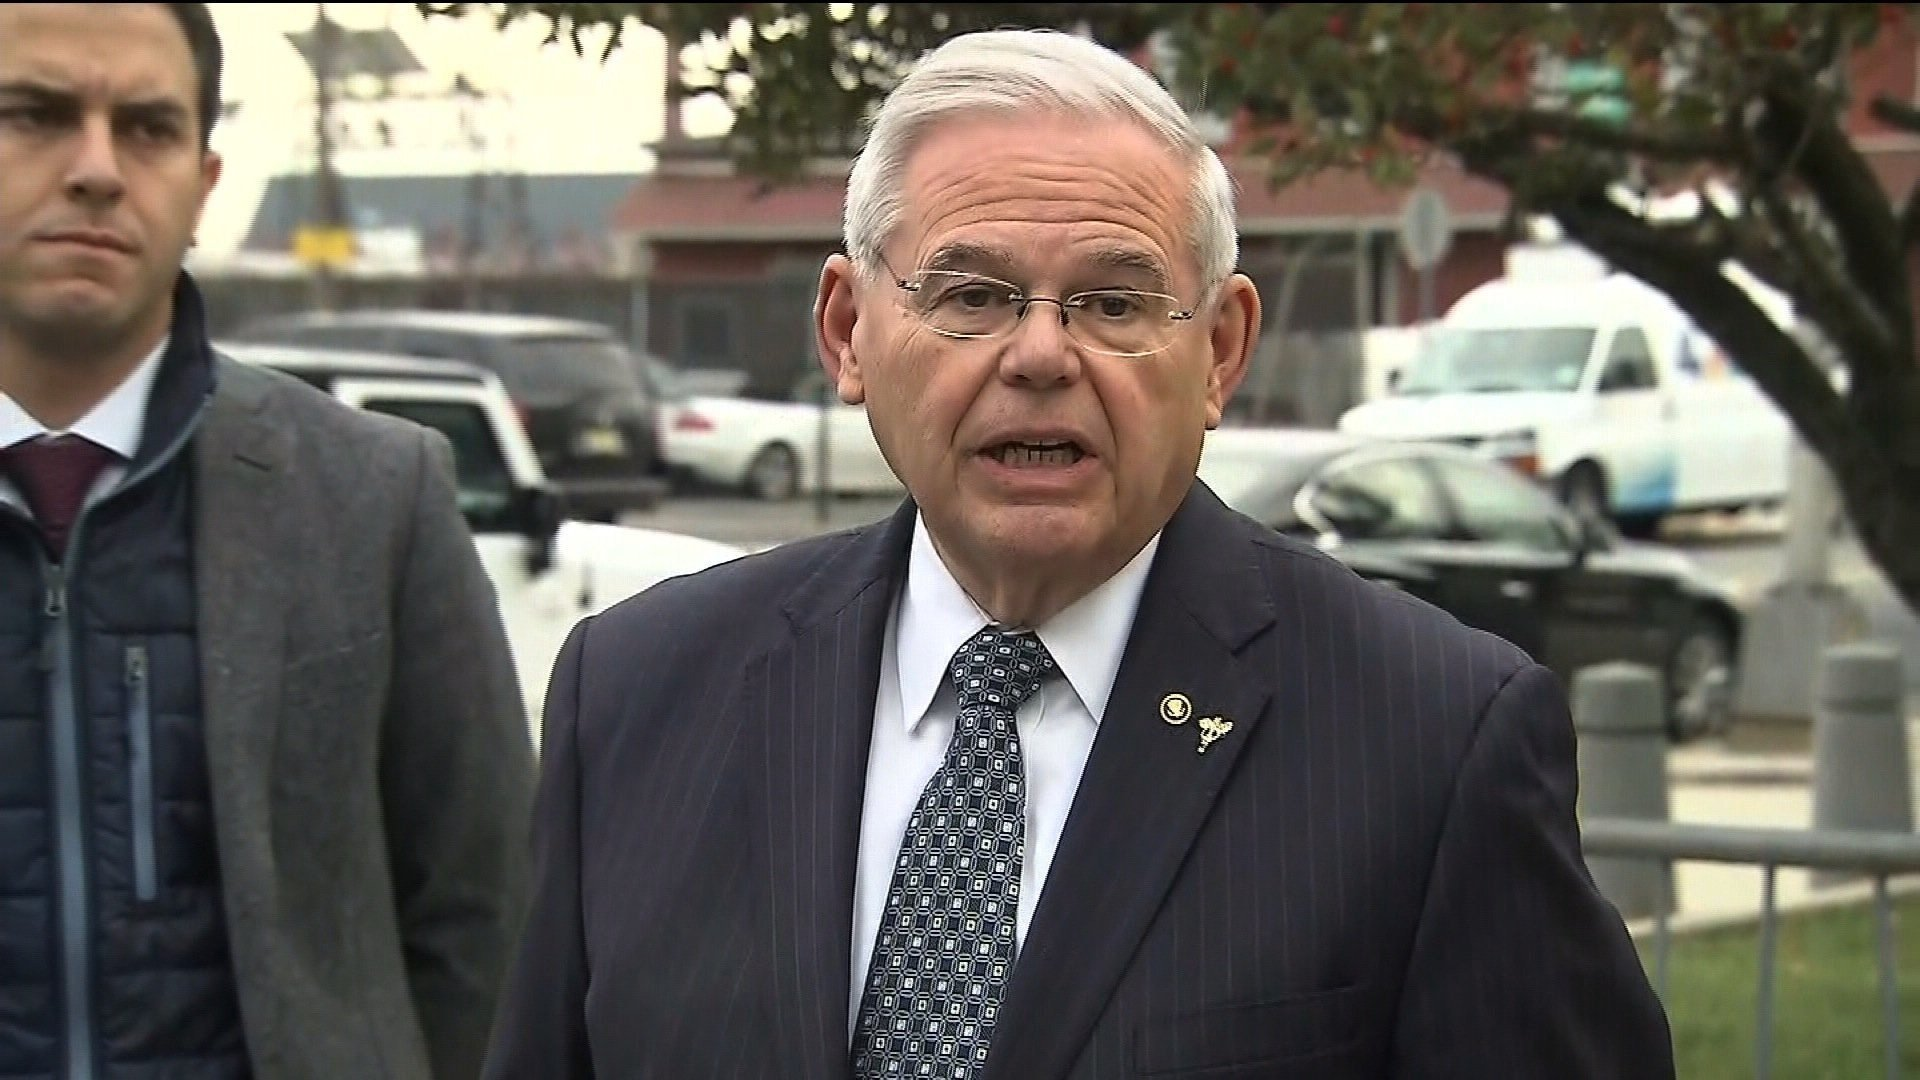 Charges against Senator Menendez to be dropped